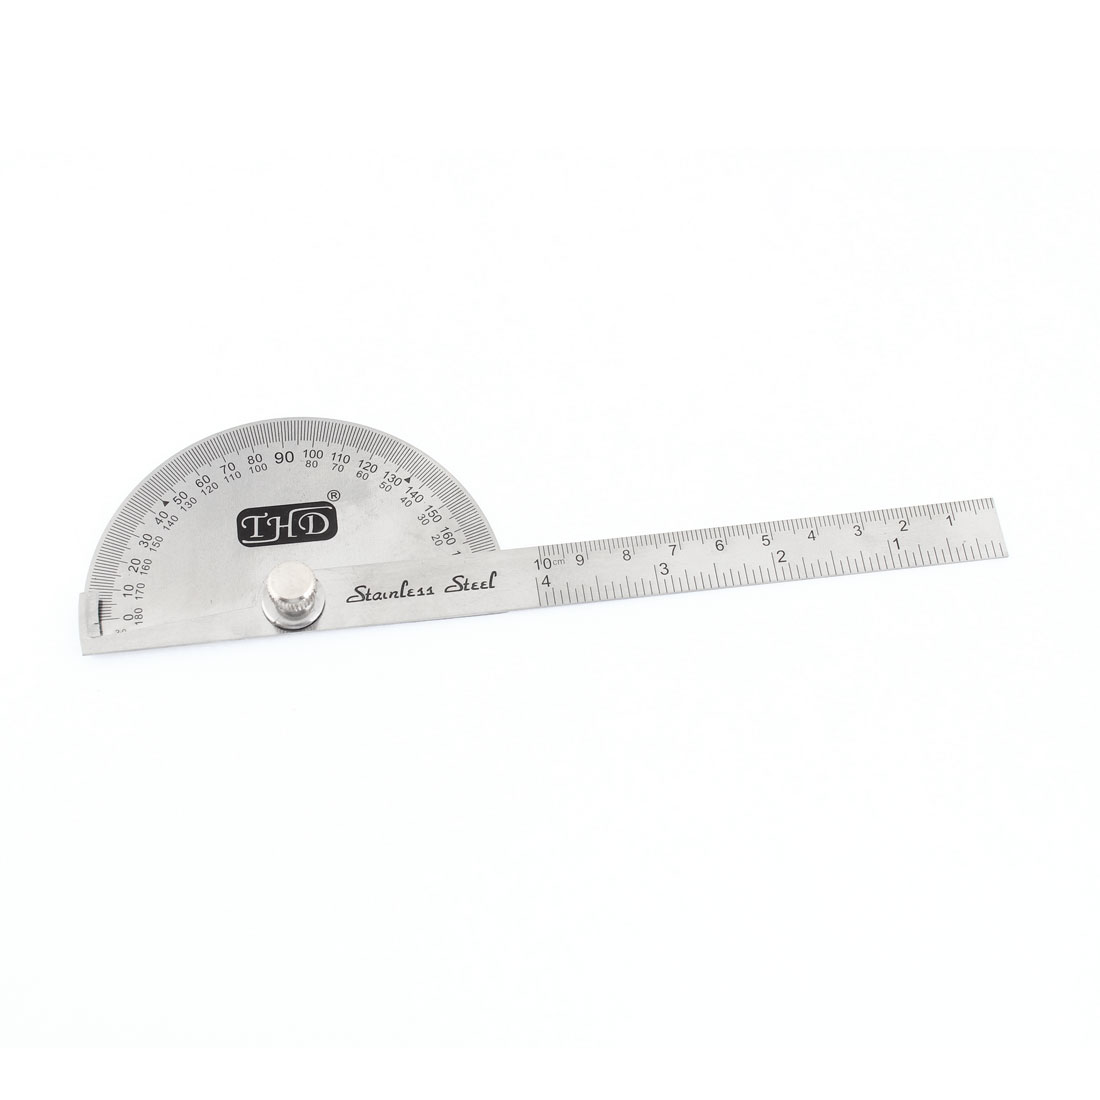 "Student Stainless Steel Angle Gauge Protractor w 4"" Measure Straight Ruler"